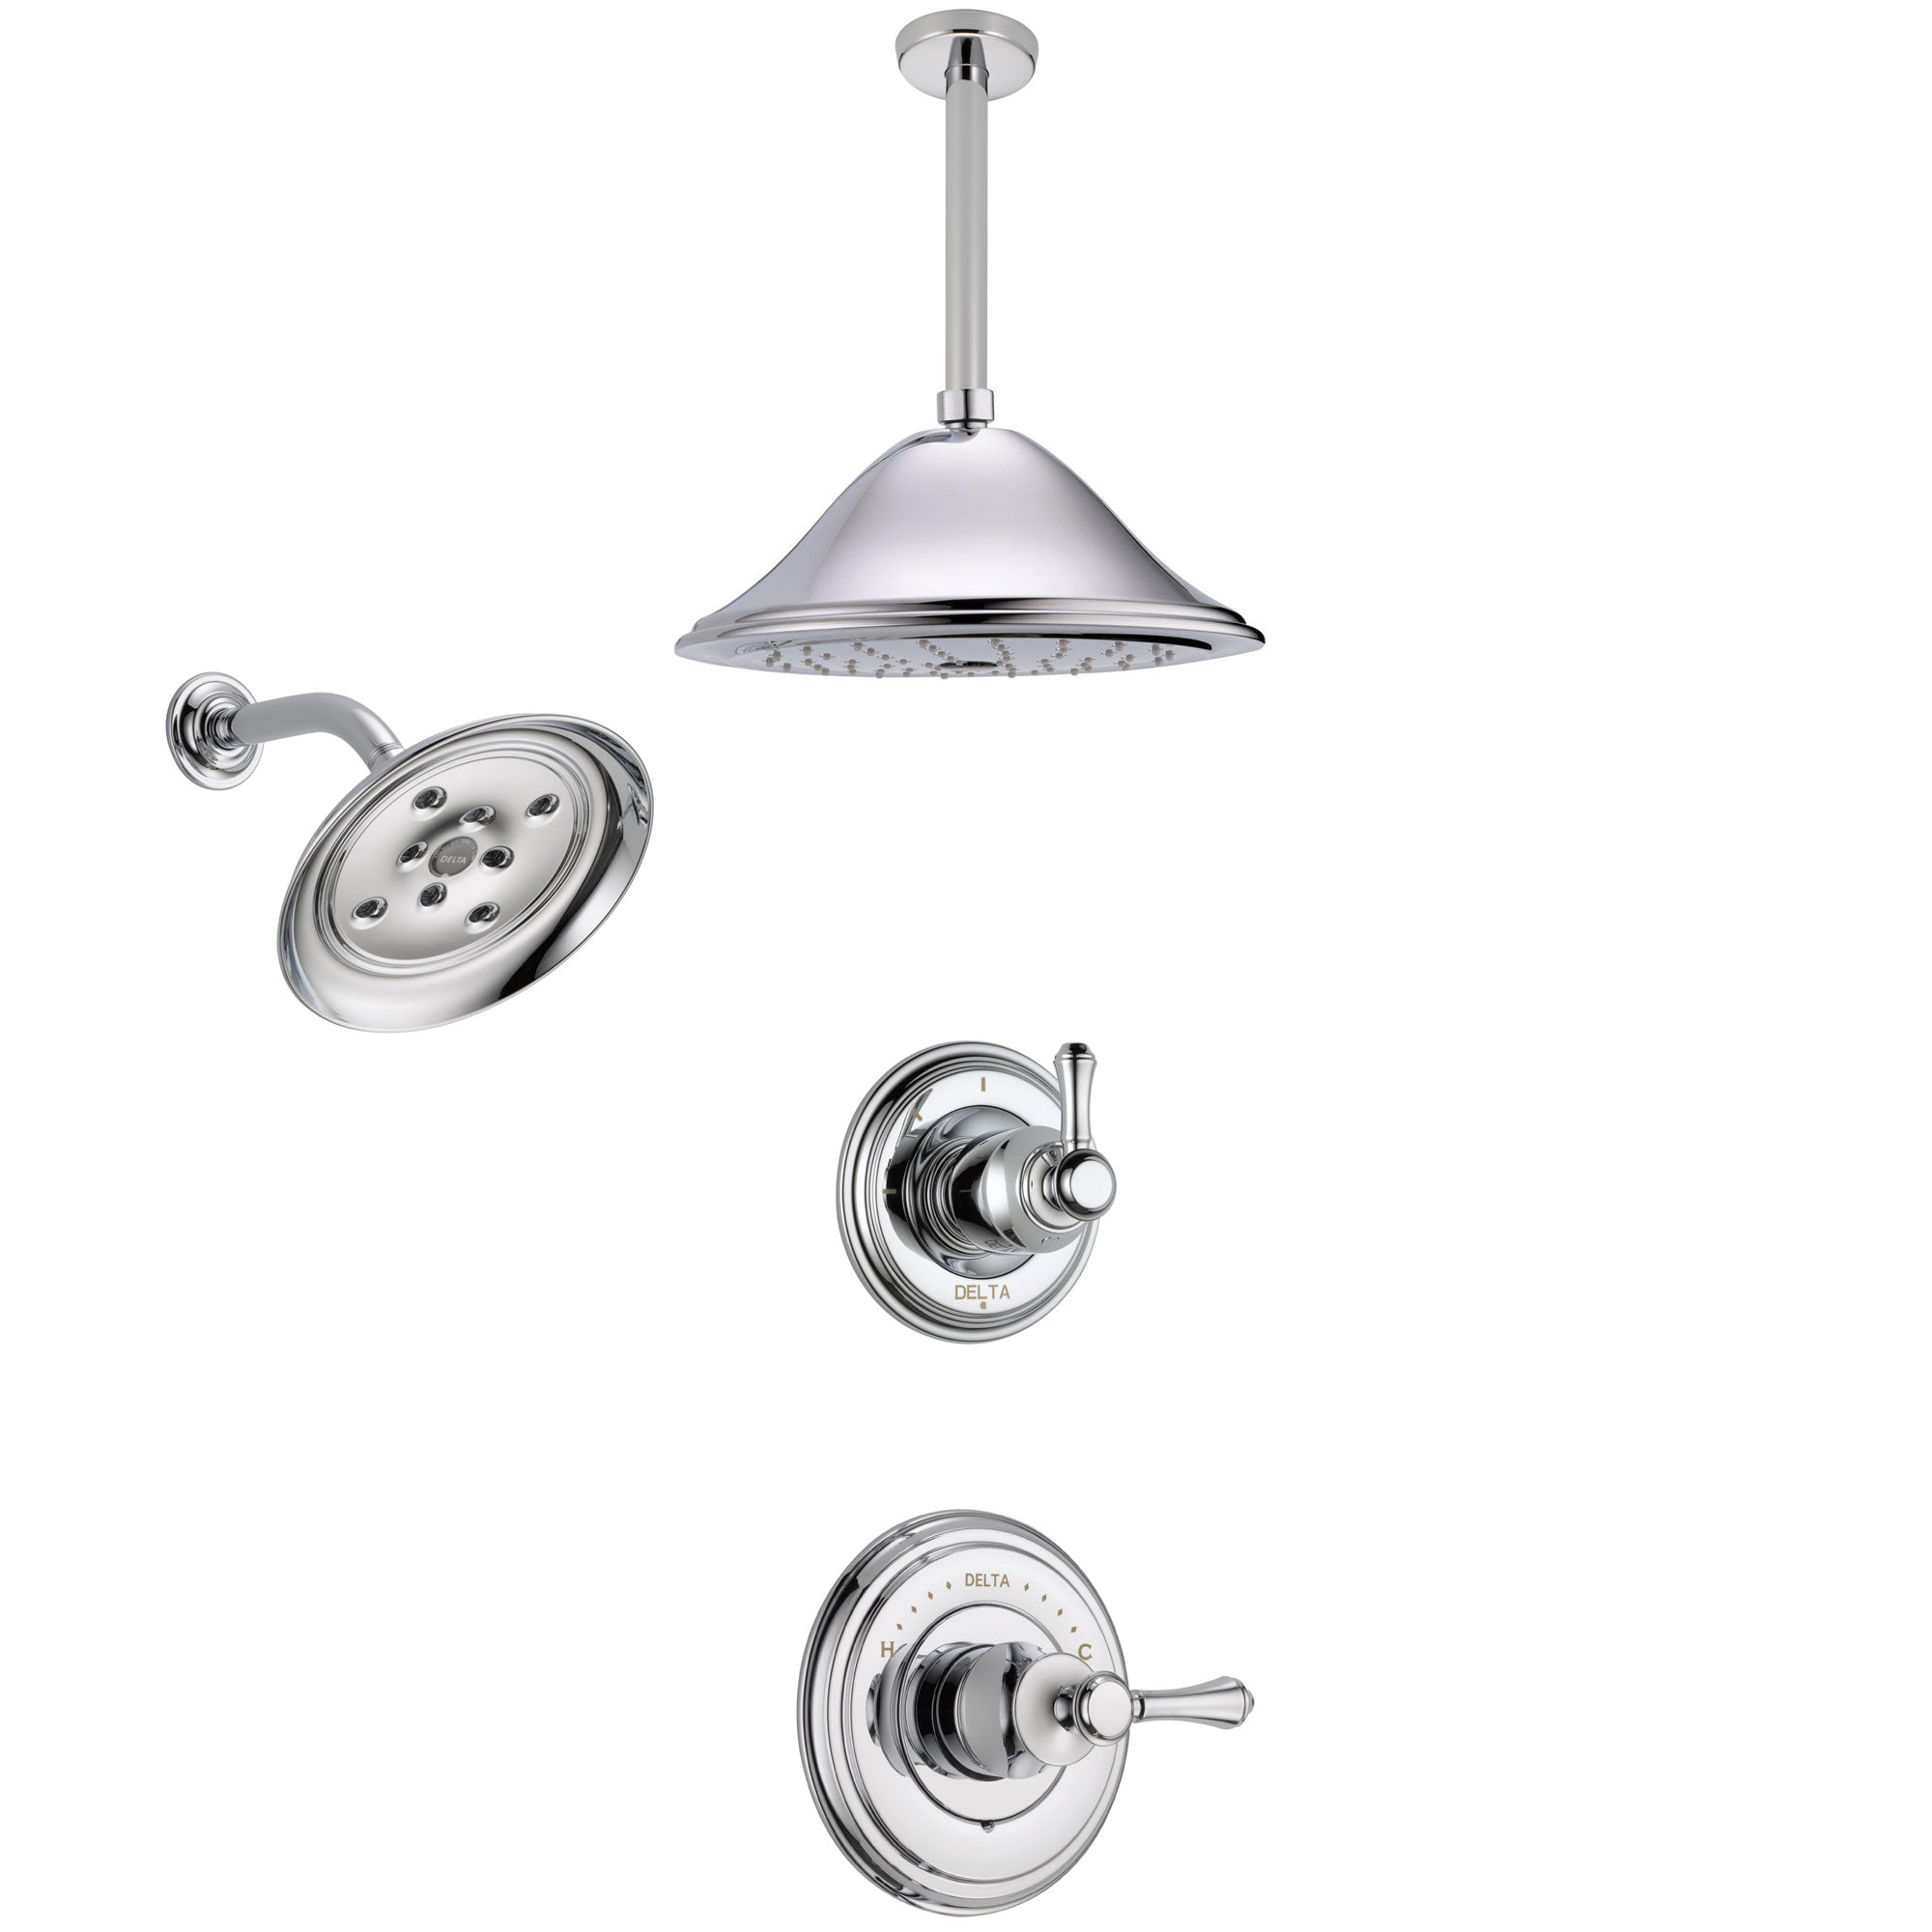 Delta Cassidy Chrome Finish Shower System with Control Handle, 3-Setting Diverter, Showerhead, and Ceiling Mount Showerhead SS1429736